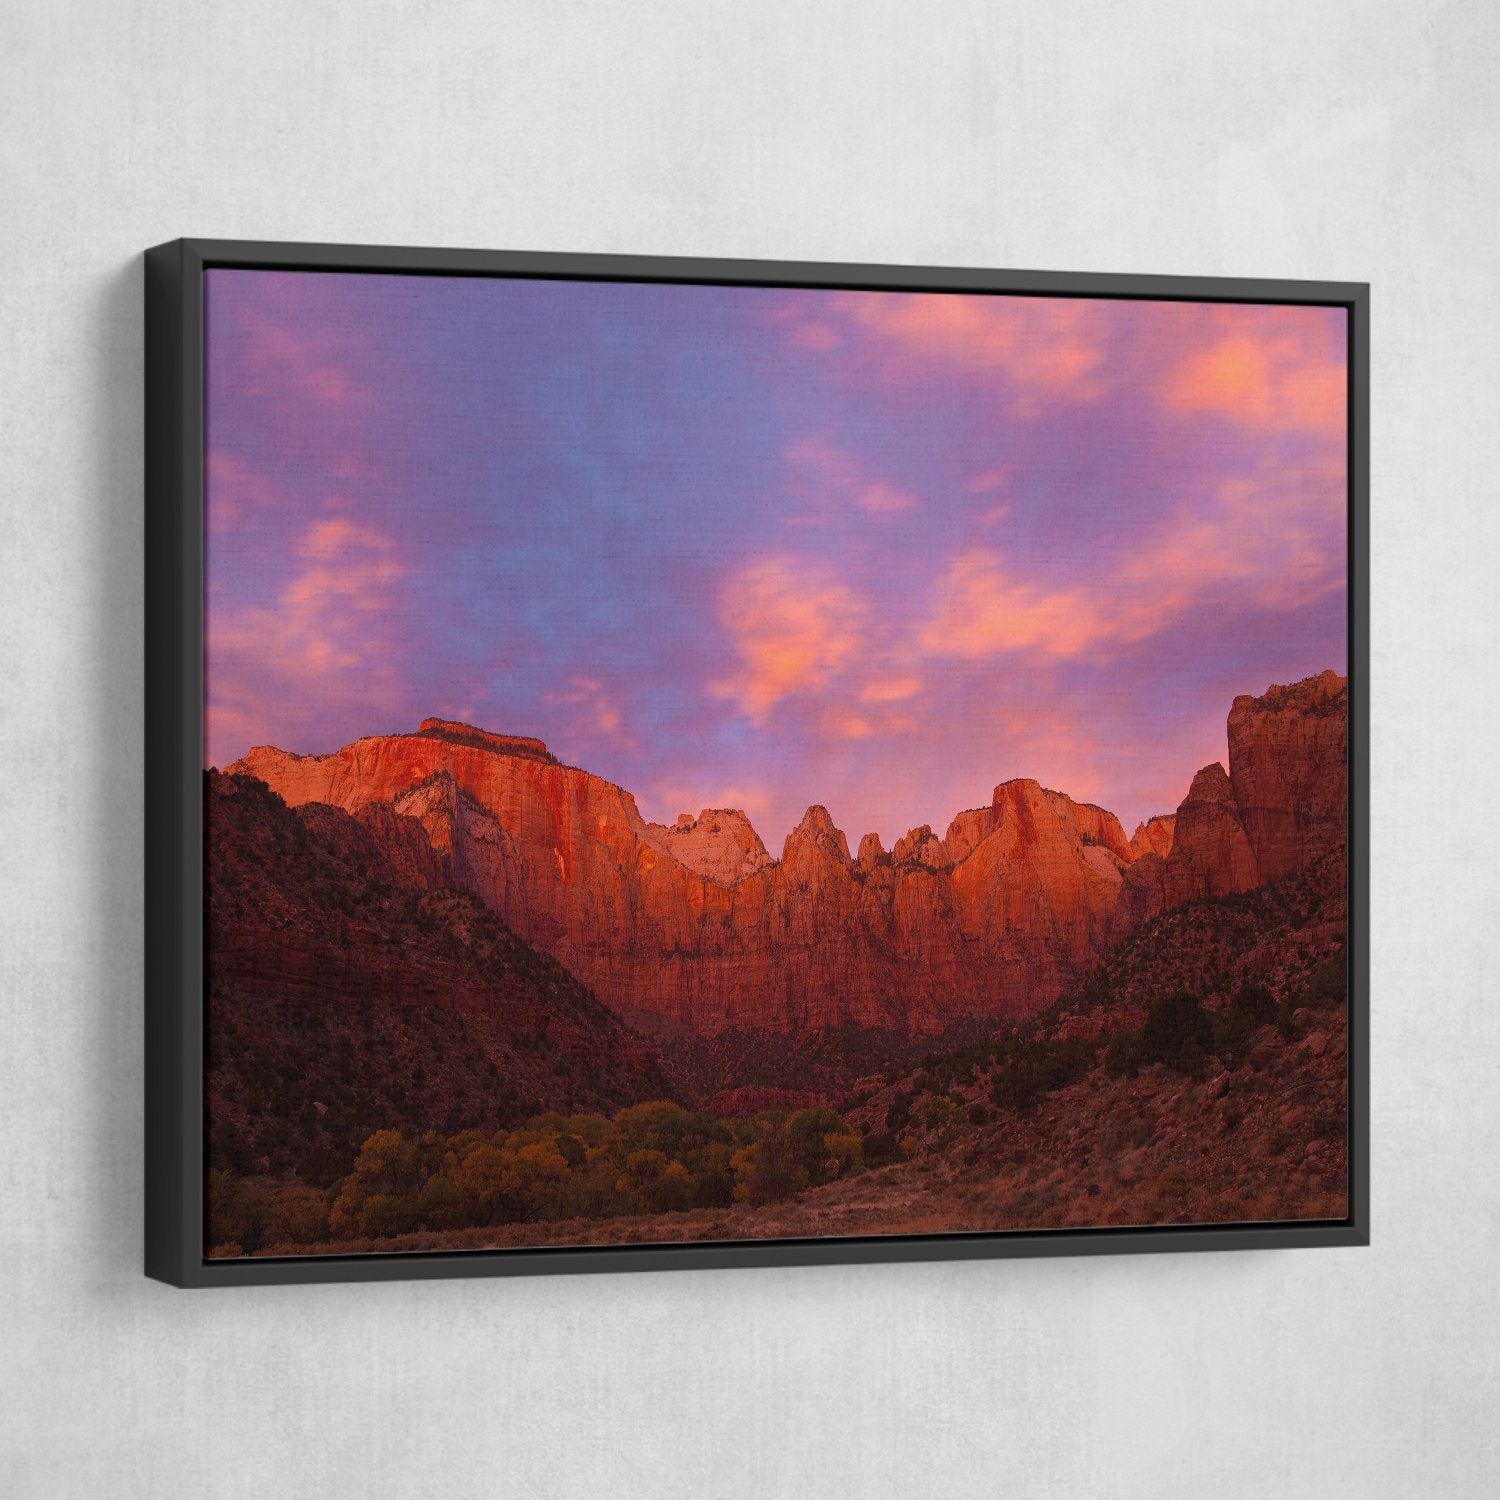 Towers of Virgin - Zion Canyon National Park black frame wall art